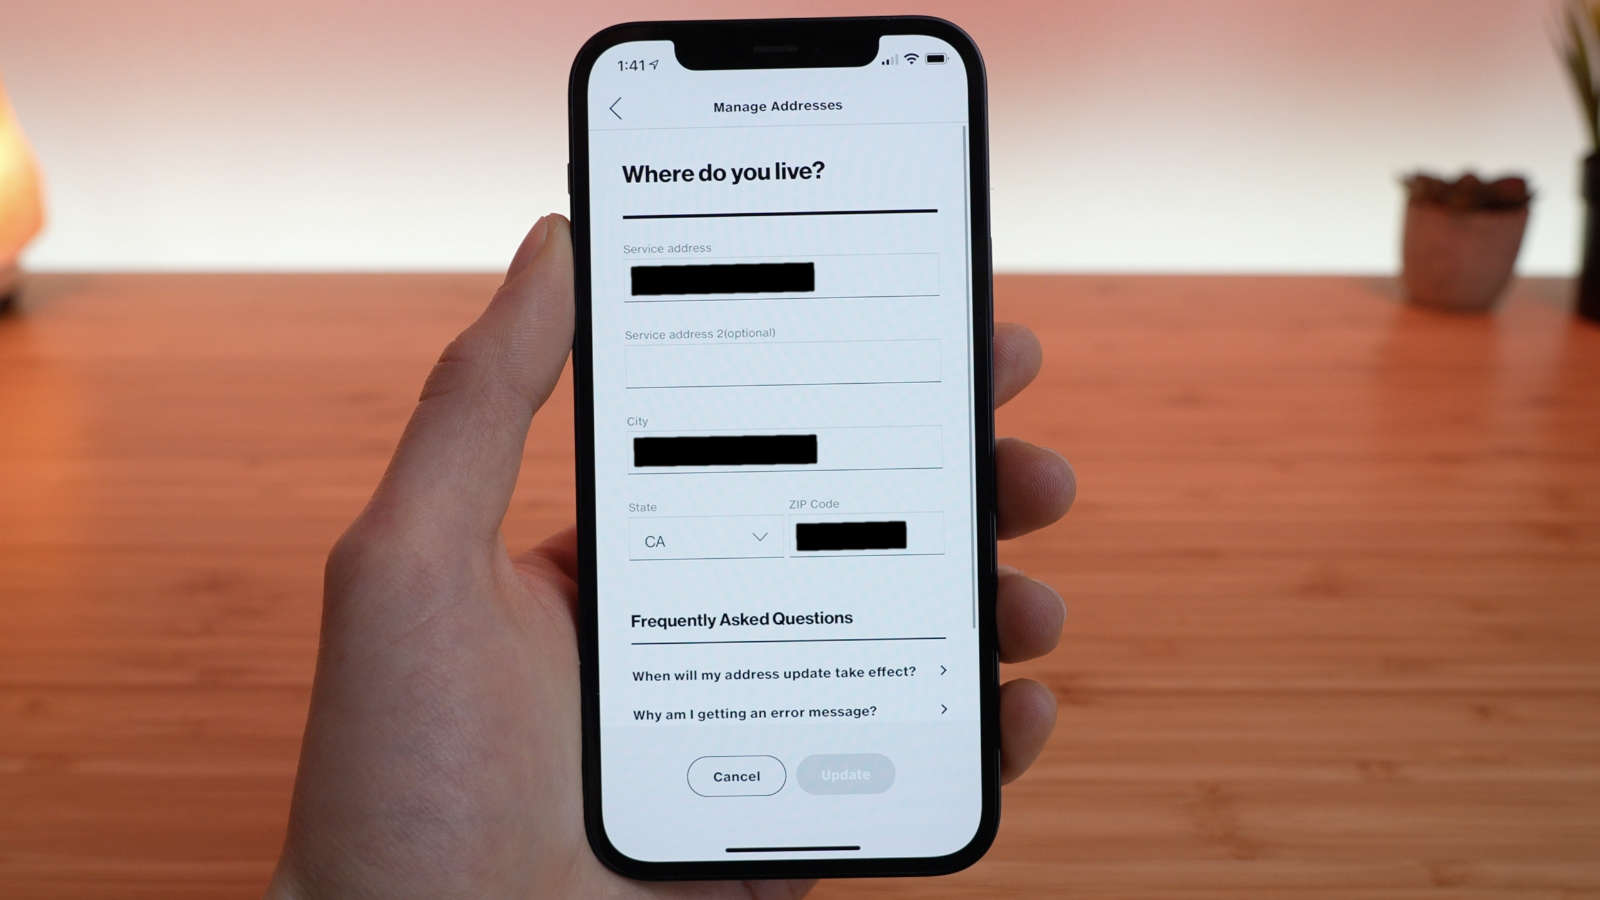 I was able to view the account holder's address in the My Verizon app